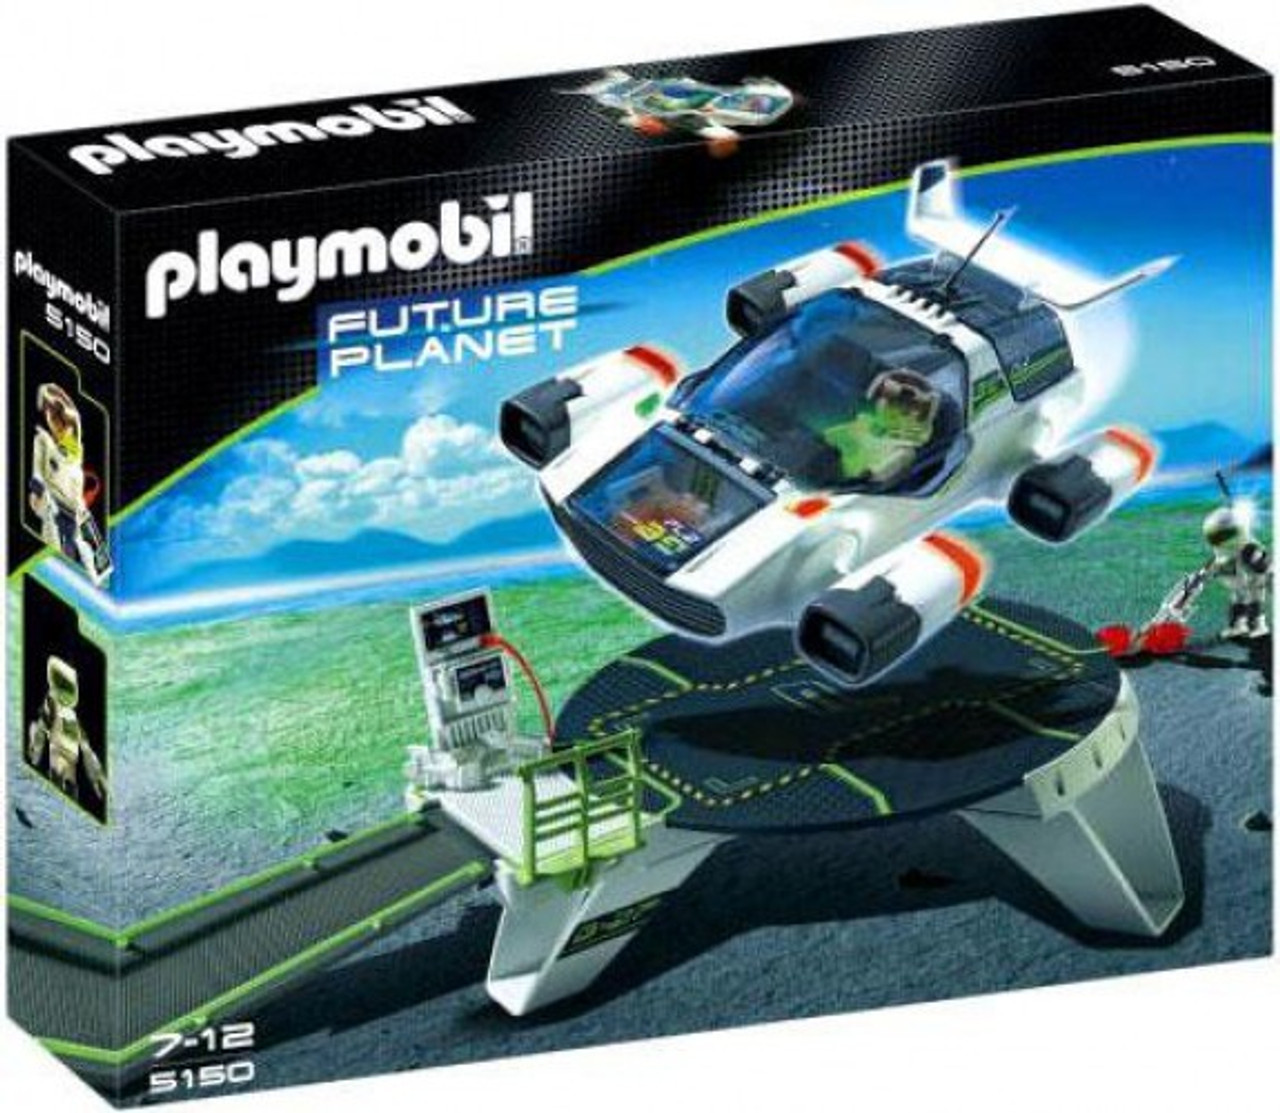 Brand New Playmobil Future Planet 5154 Darksters Truck with Flash Cannon